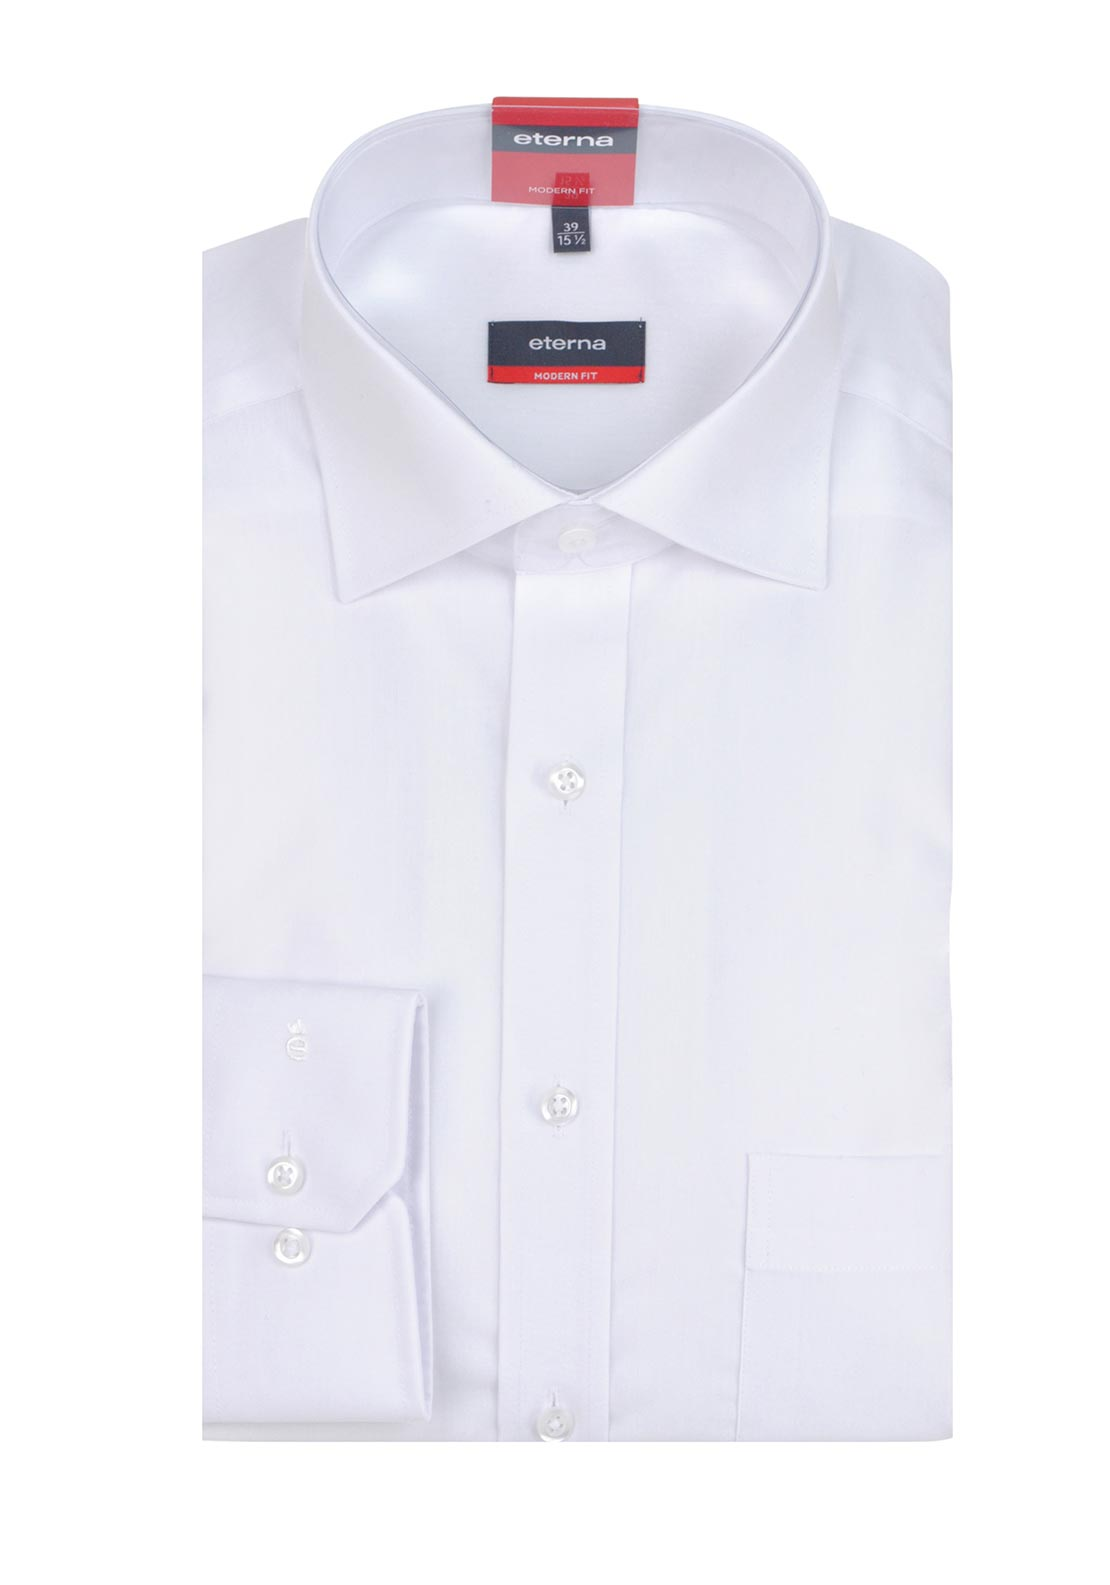 Eterna Mens Long Sleeved Formal Shirt, White